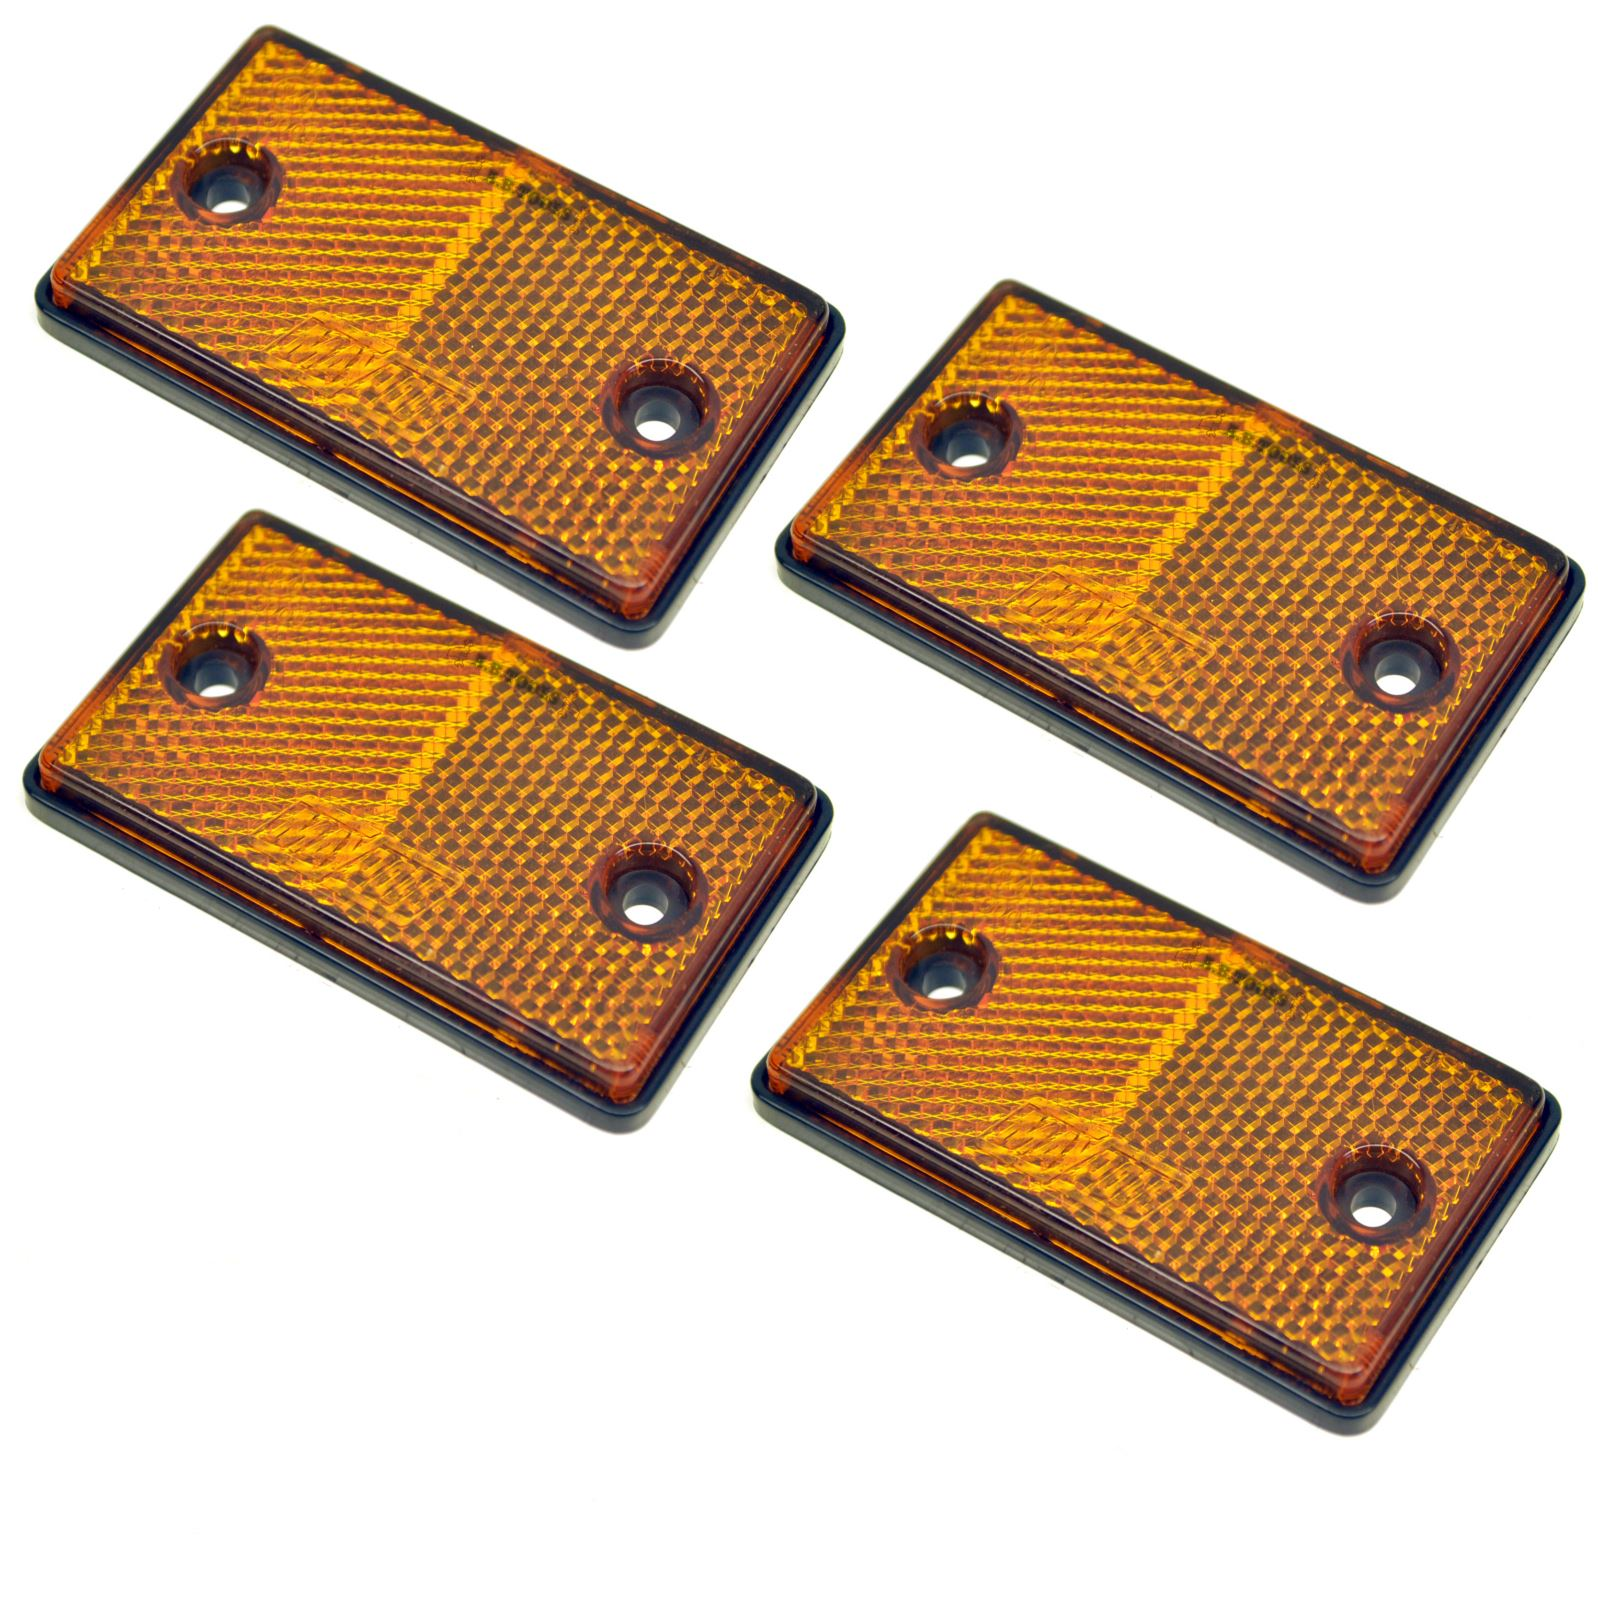 Red-Amber-White-Reflector-Packs-for-Trailers-Fence-Gate-Posts-Round-Large thumbnail 7